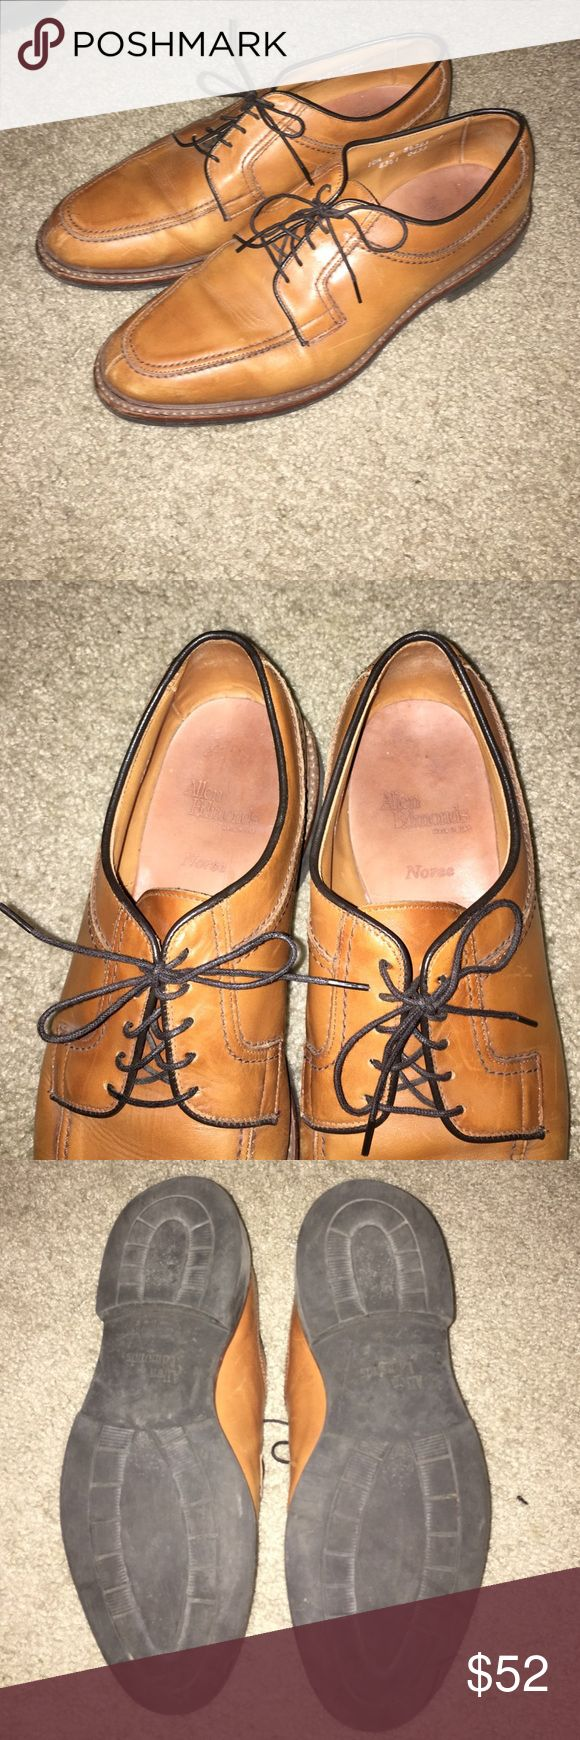 Allen Edmons Norse dress shoes Allen Edmonds Norse dress shoes! Good condition, no rips, tears or stains anywhere. Bottom of shoes aren't horrible, pretty good condition! Have any questions? Feel free to comment below! Allen Edmonds Shoes Oxfords & Derbys